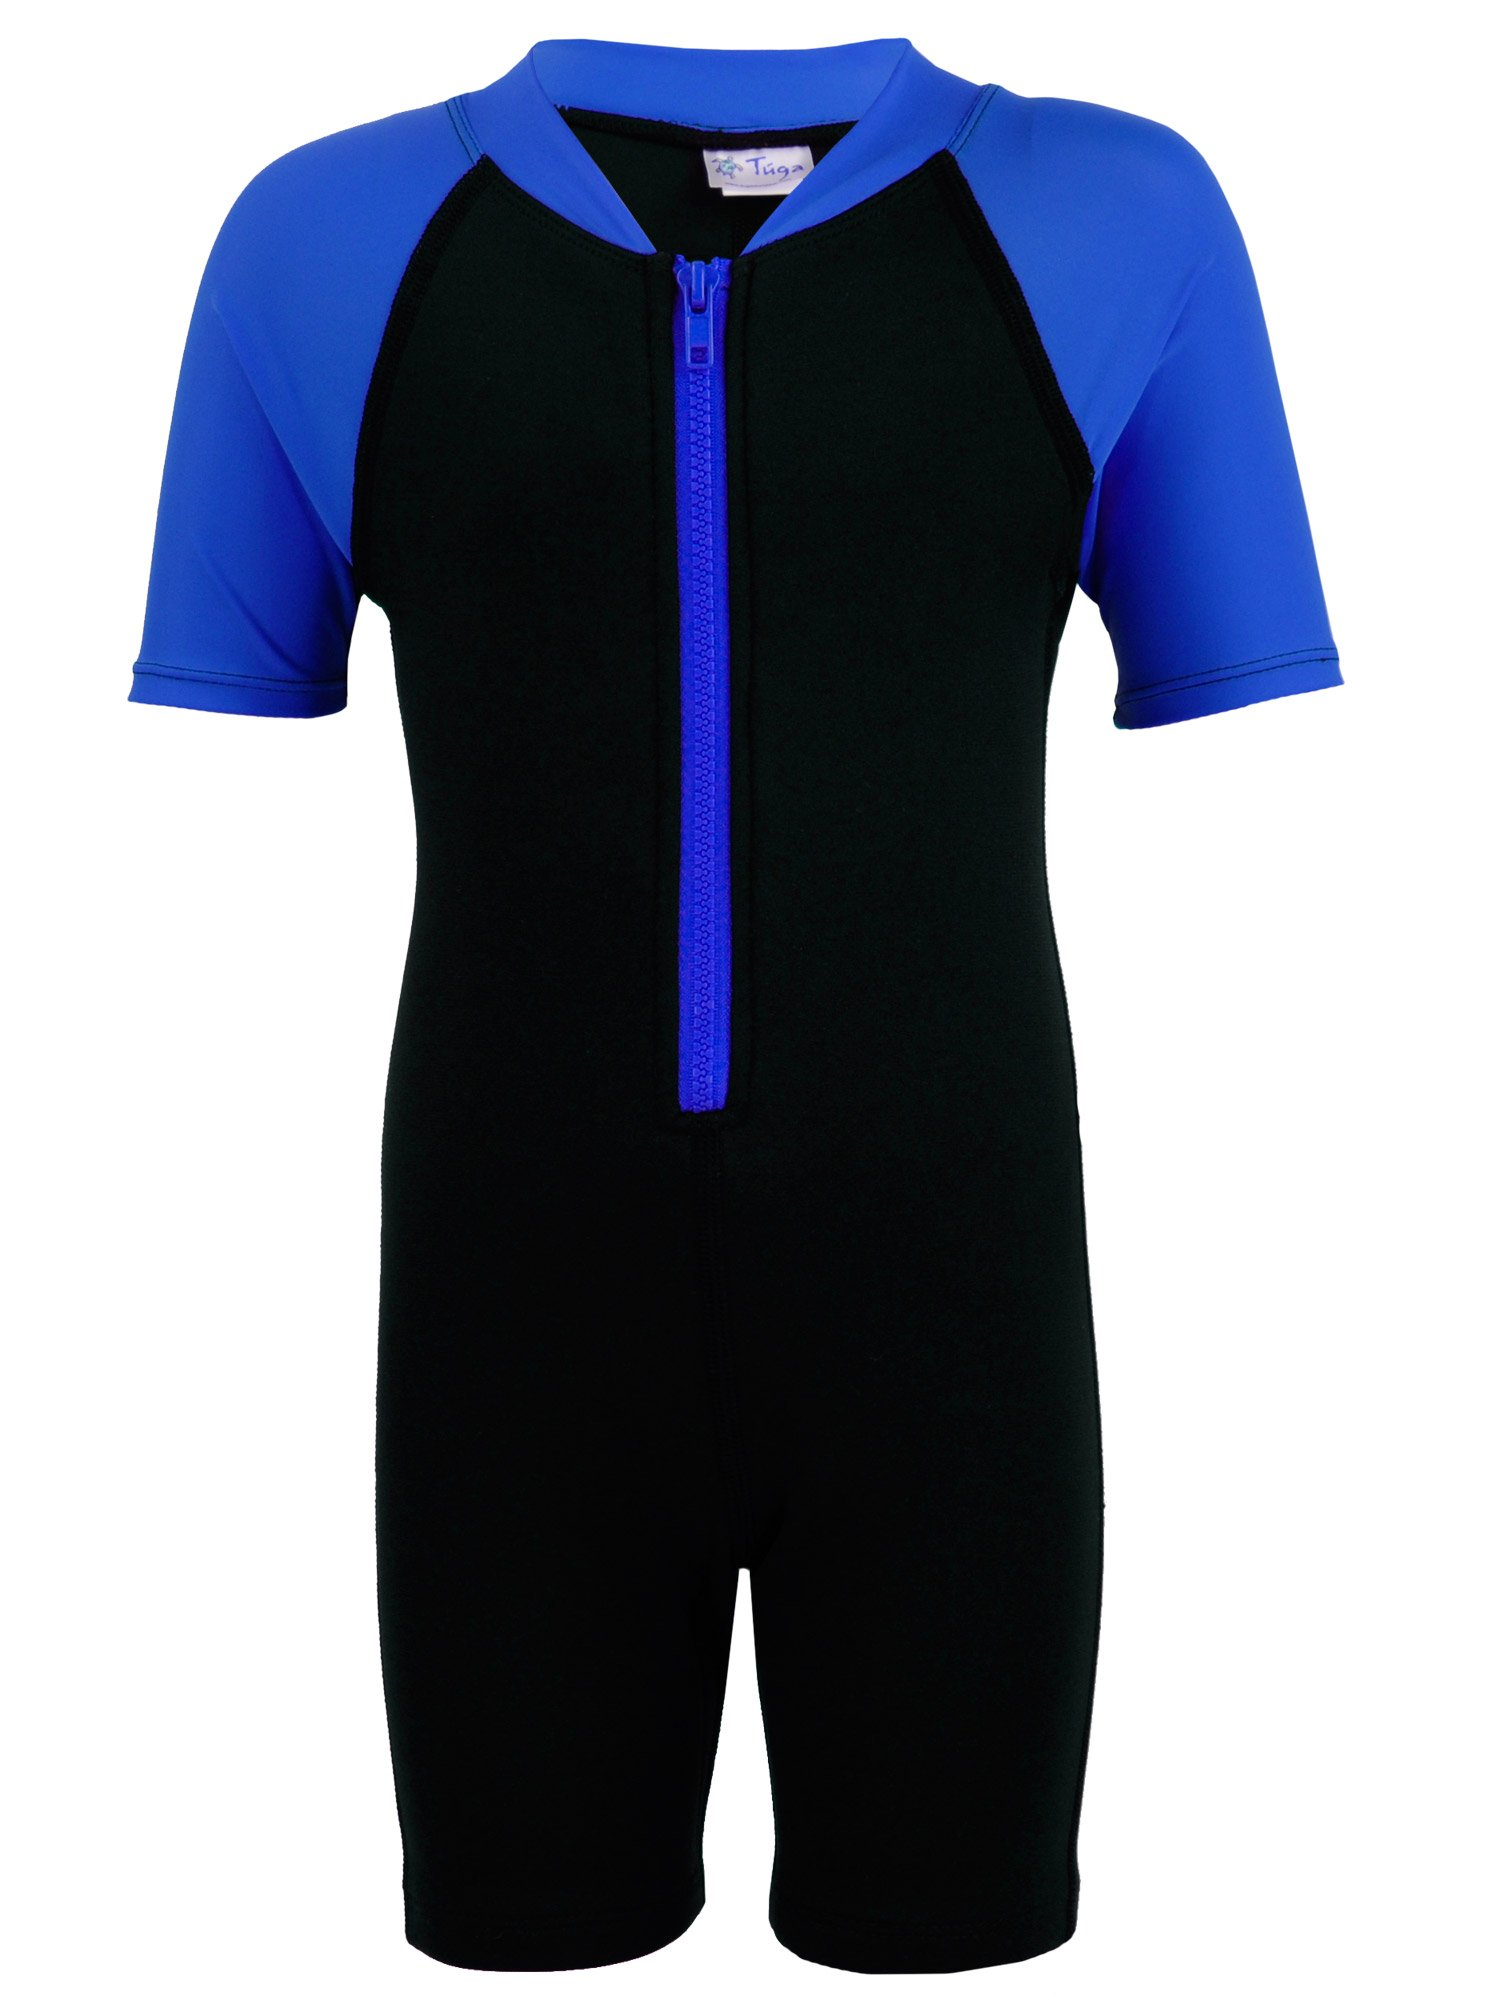 Tuga Boys Thermal Wetsuit (UPF 50+), Royal, S (7/8 yrs) by Tuga Sunwear (Image #1)